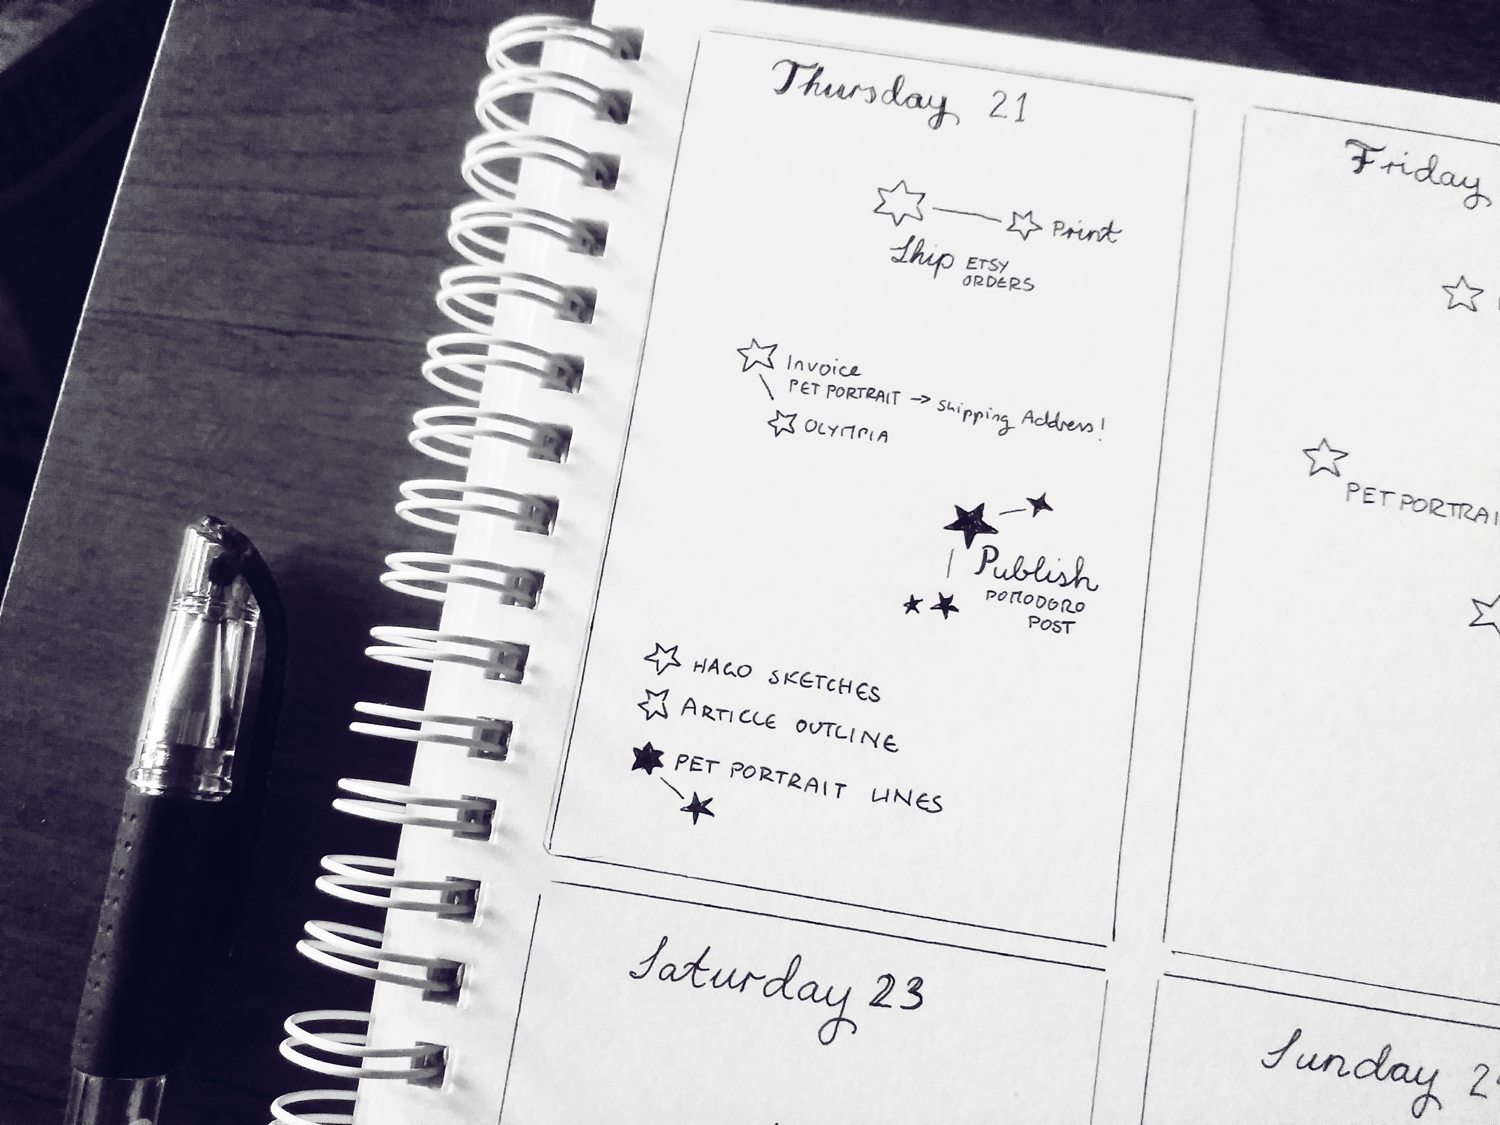 Starry sky weekly layout in my bullet journal, combined with the Pomodoro Technqie. All the unnamed stars aren't part of the to-do list but mark a Pomodoro session spent on the task. Case in point: Finishing up this blog post about productivity tips and Pomodoro BuJo layouts this morning took me three sessions.